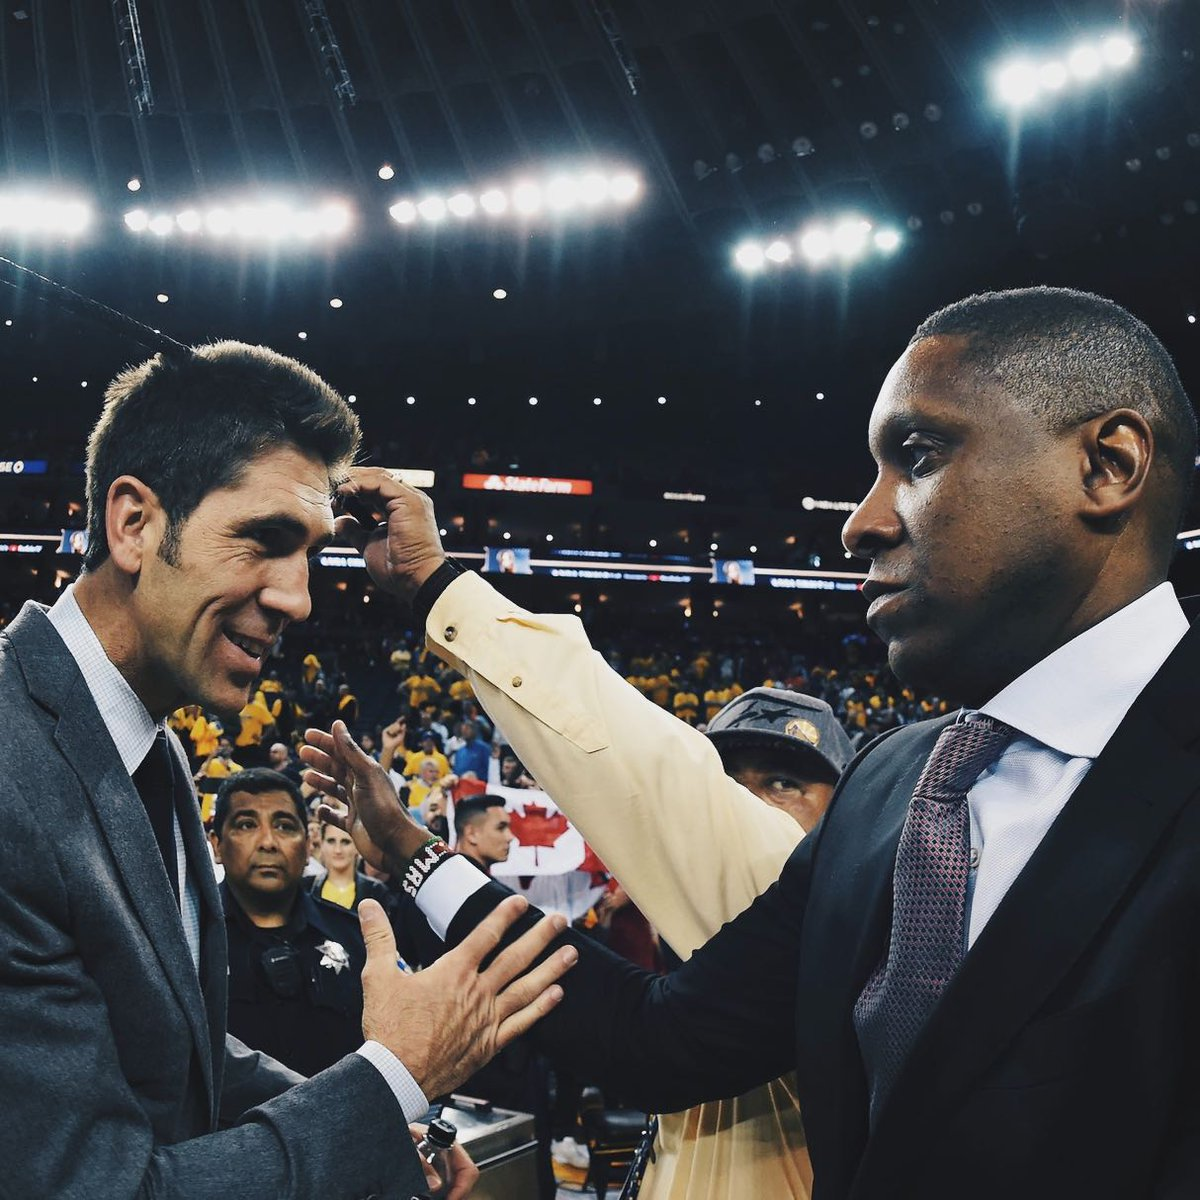 Same risks. Different team.  🧠 Masai Ujiri  Fires Dwane Casey Hires Nick Nurse Signs undrafted VanVleet Kawhi for DeMar  Marc Gasol at deadline  🧠 Bob Myers  Fires Mark Jackson Hires Steve Kerr Drafts Draymond No. 35 overall Doesn't trade Klay for Love Convinces KD to sign